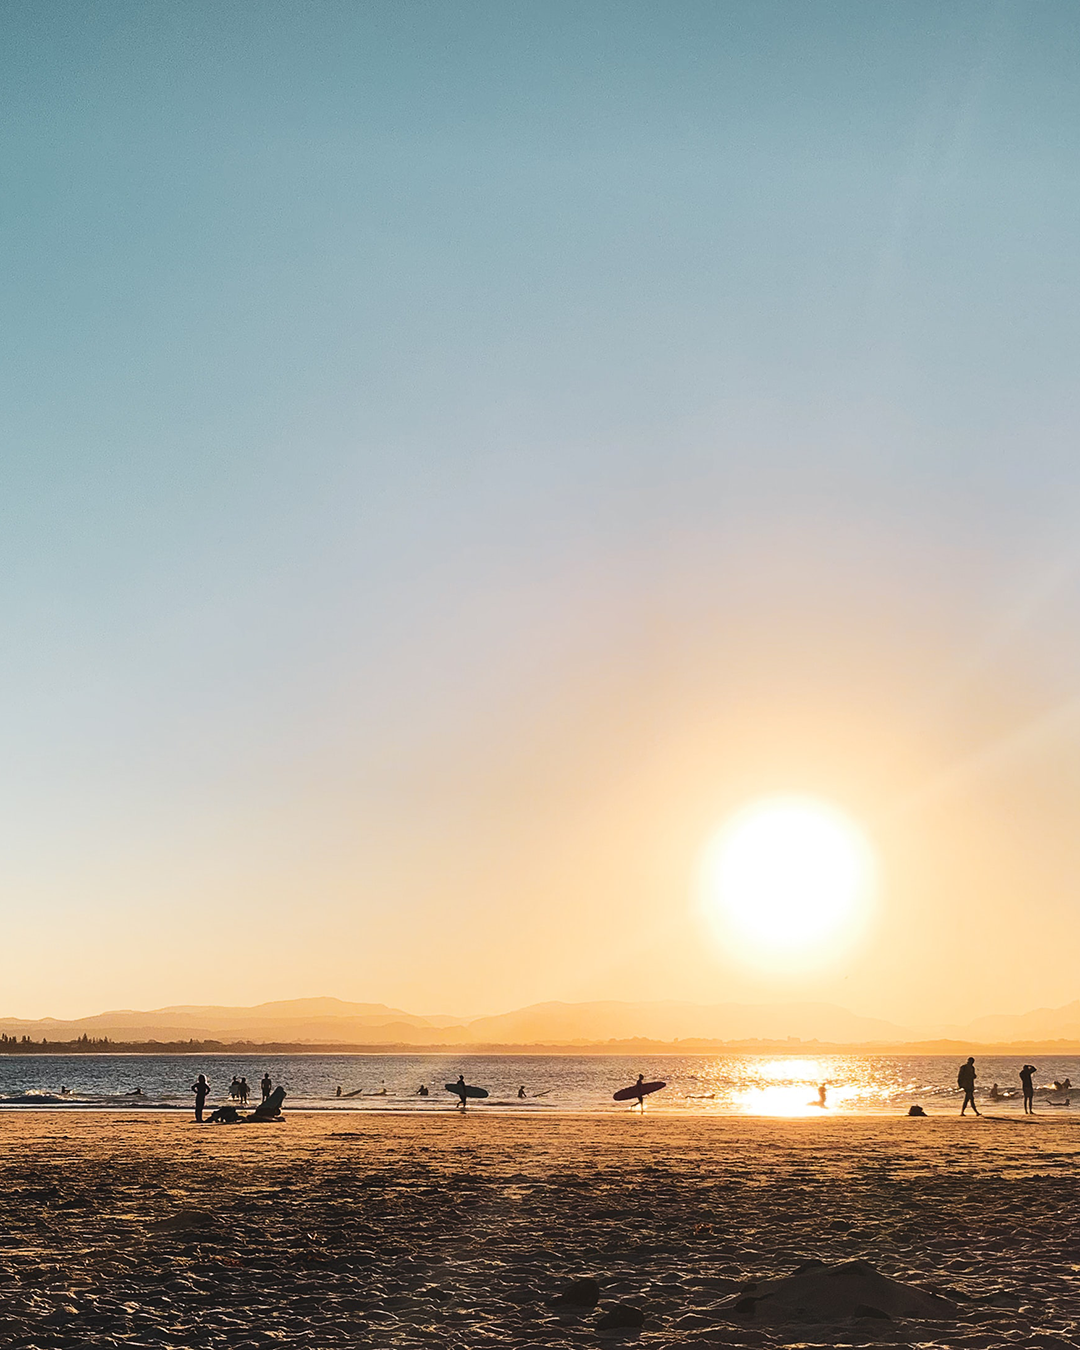 sunset at the beach with dreamy mountains in the background an surfers scattered on the beach.